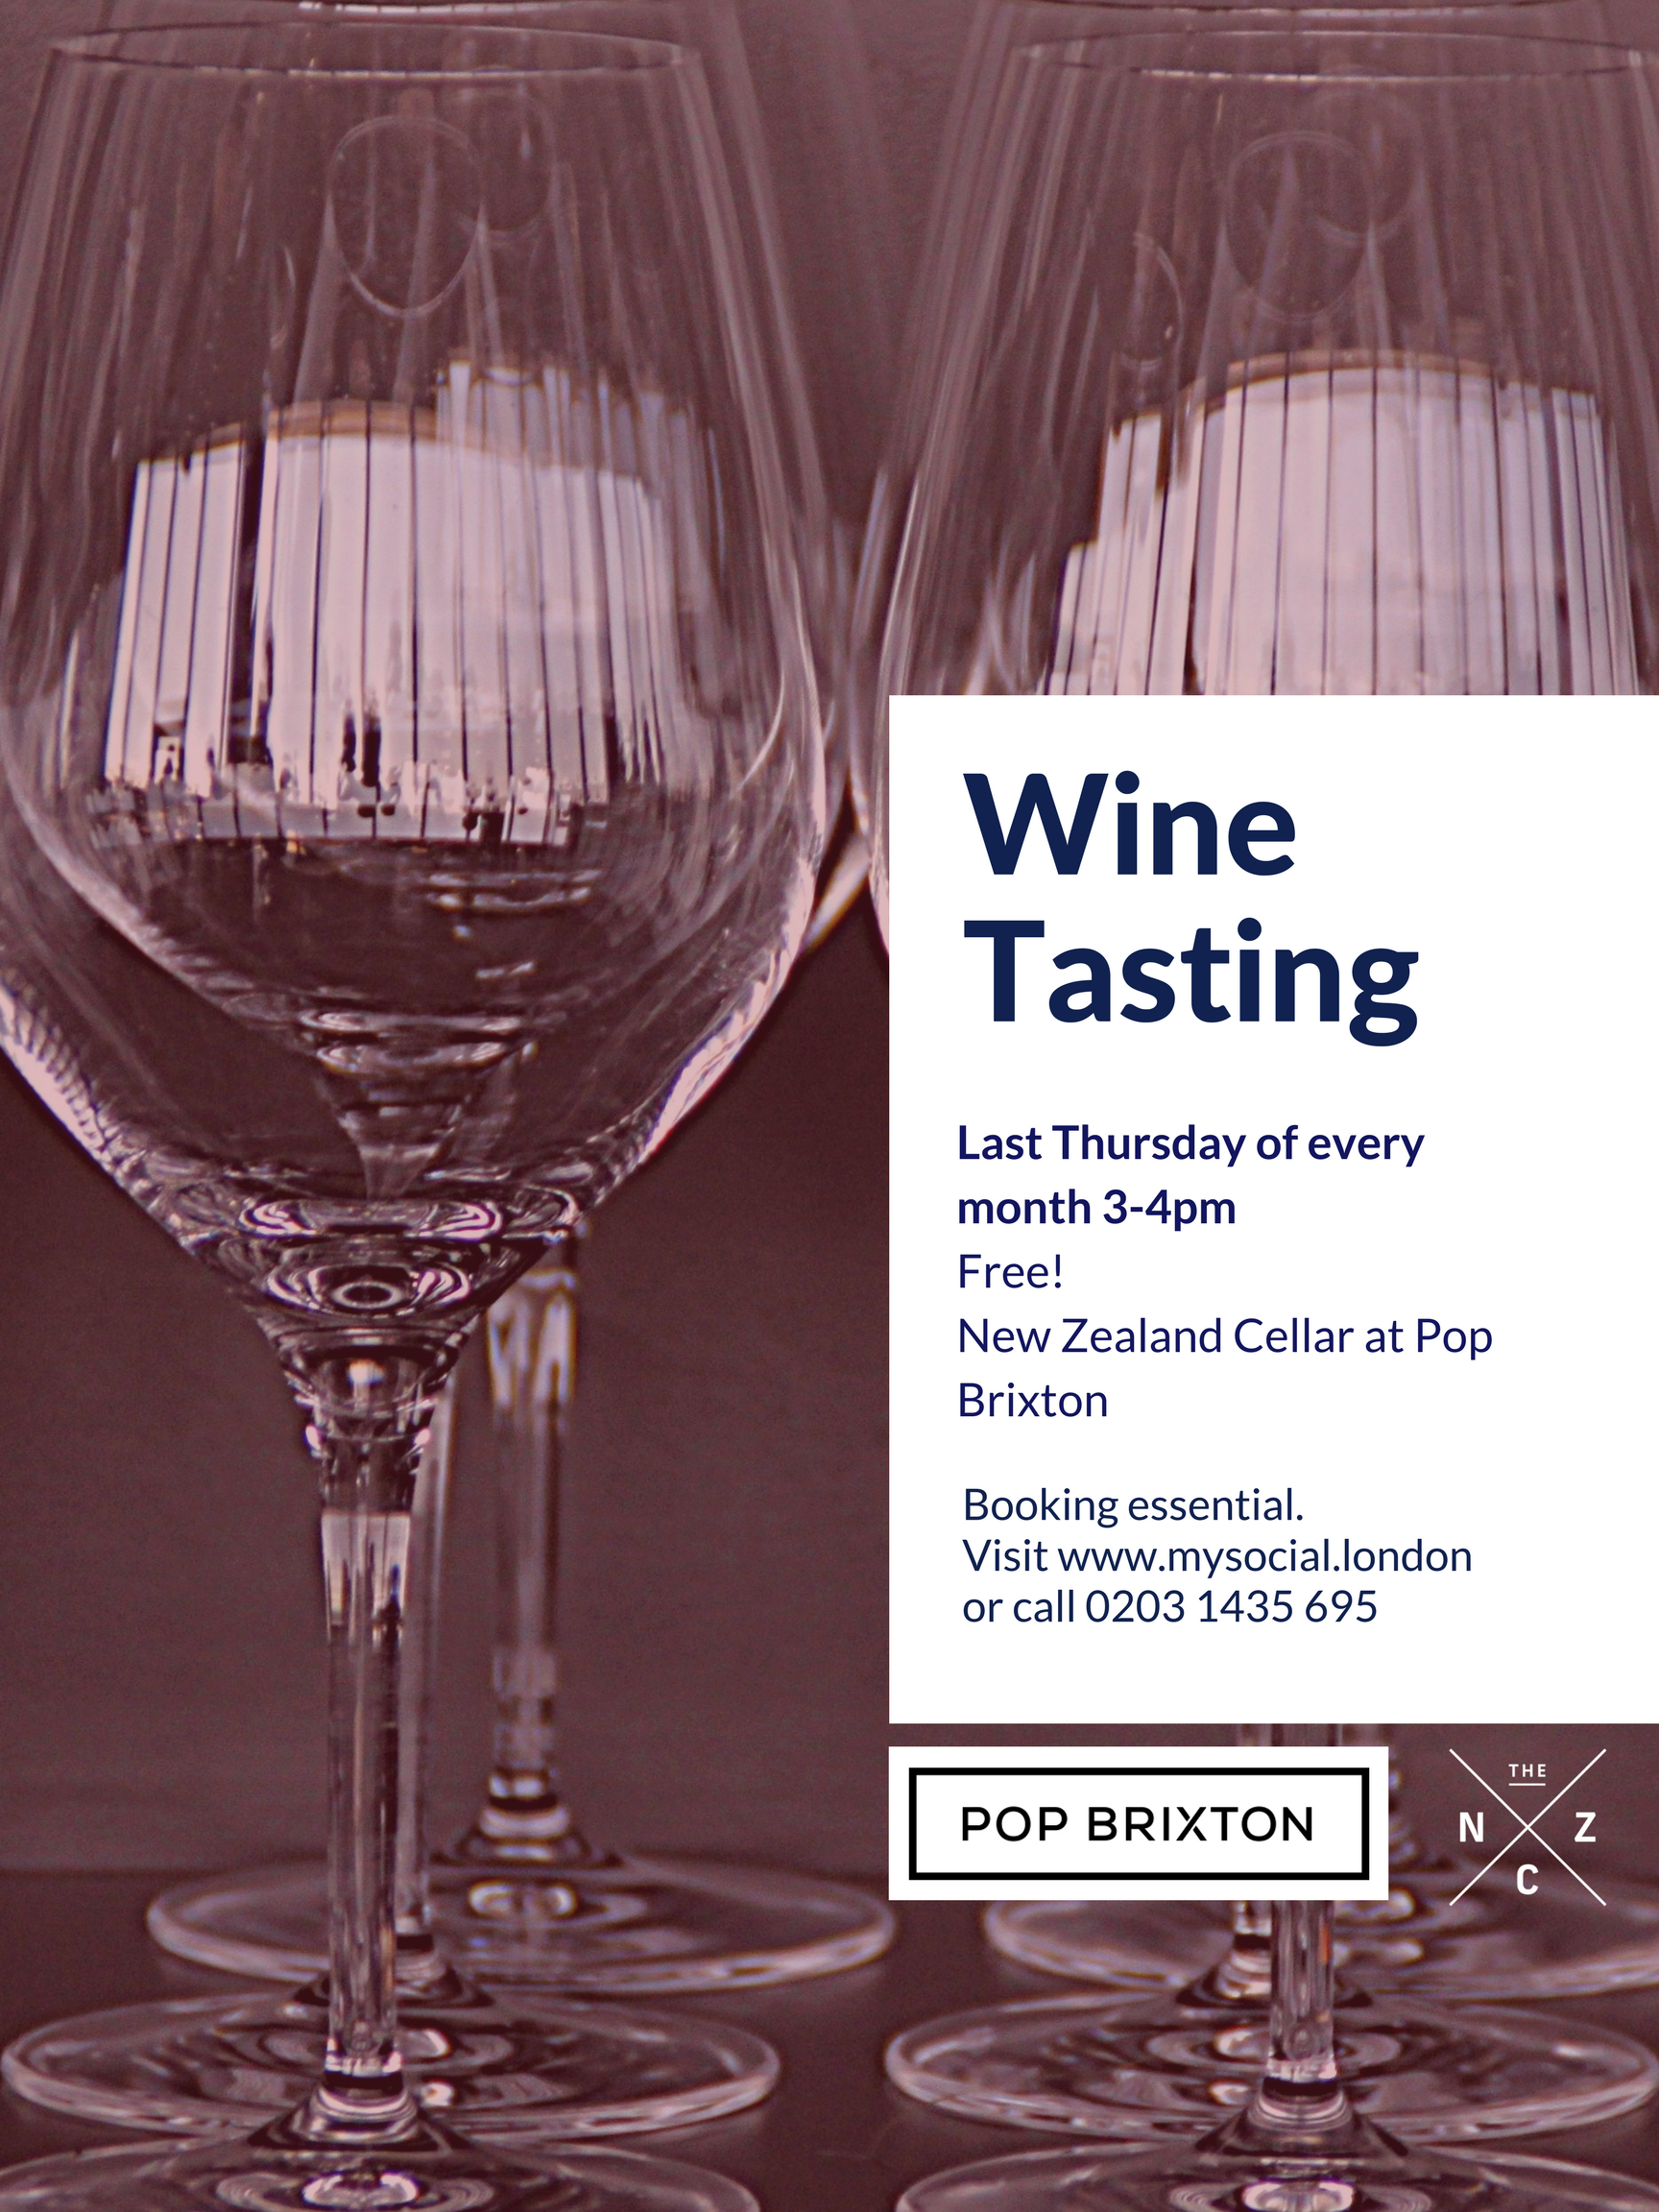 Wine tasting at Pop Brixton, click for more details